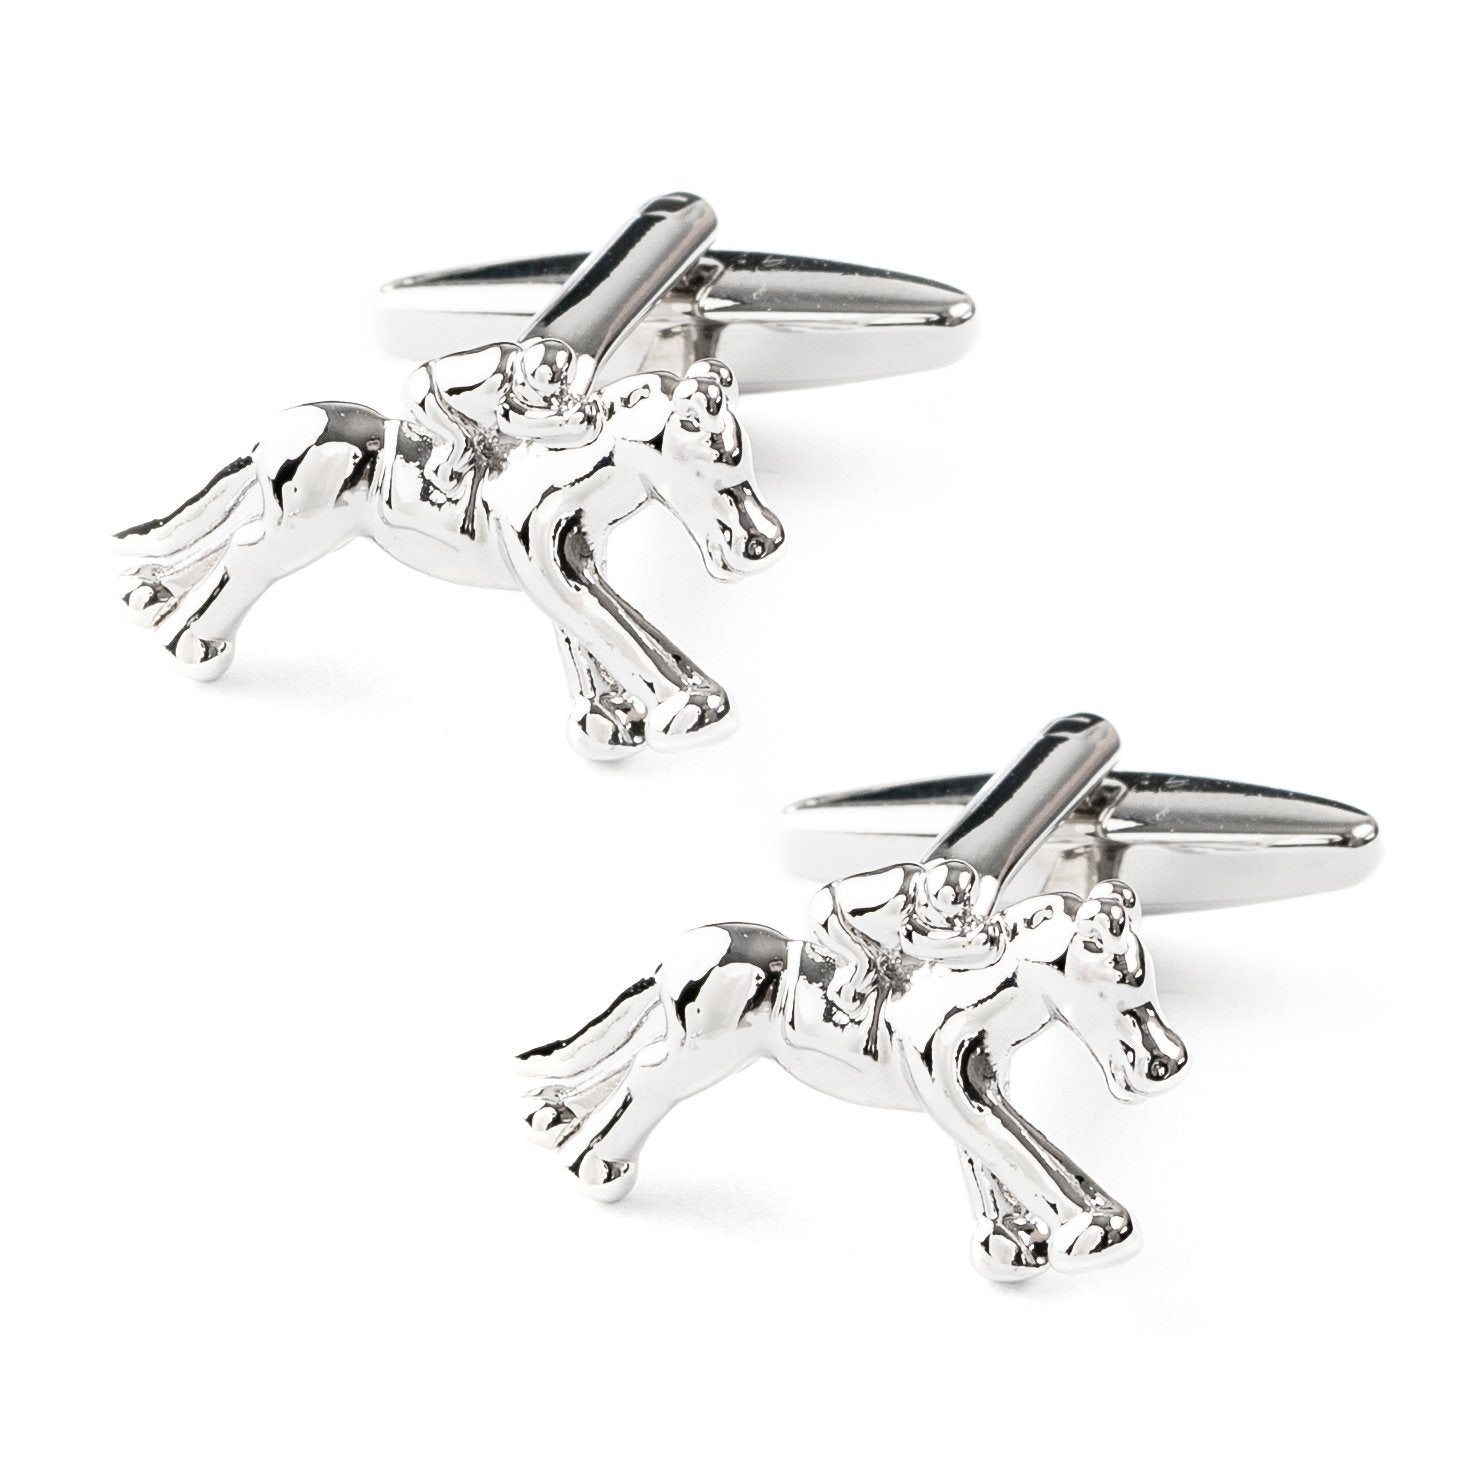 """Melbourne Cup"" Horse Racing Silver Cufflinks, Novelty Cufflinks, Cuffed.com.au, CL6300, Animals, Gambling, Horses, Clinks Australia"